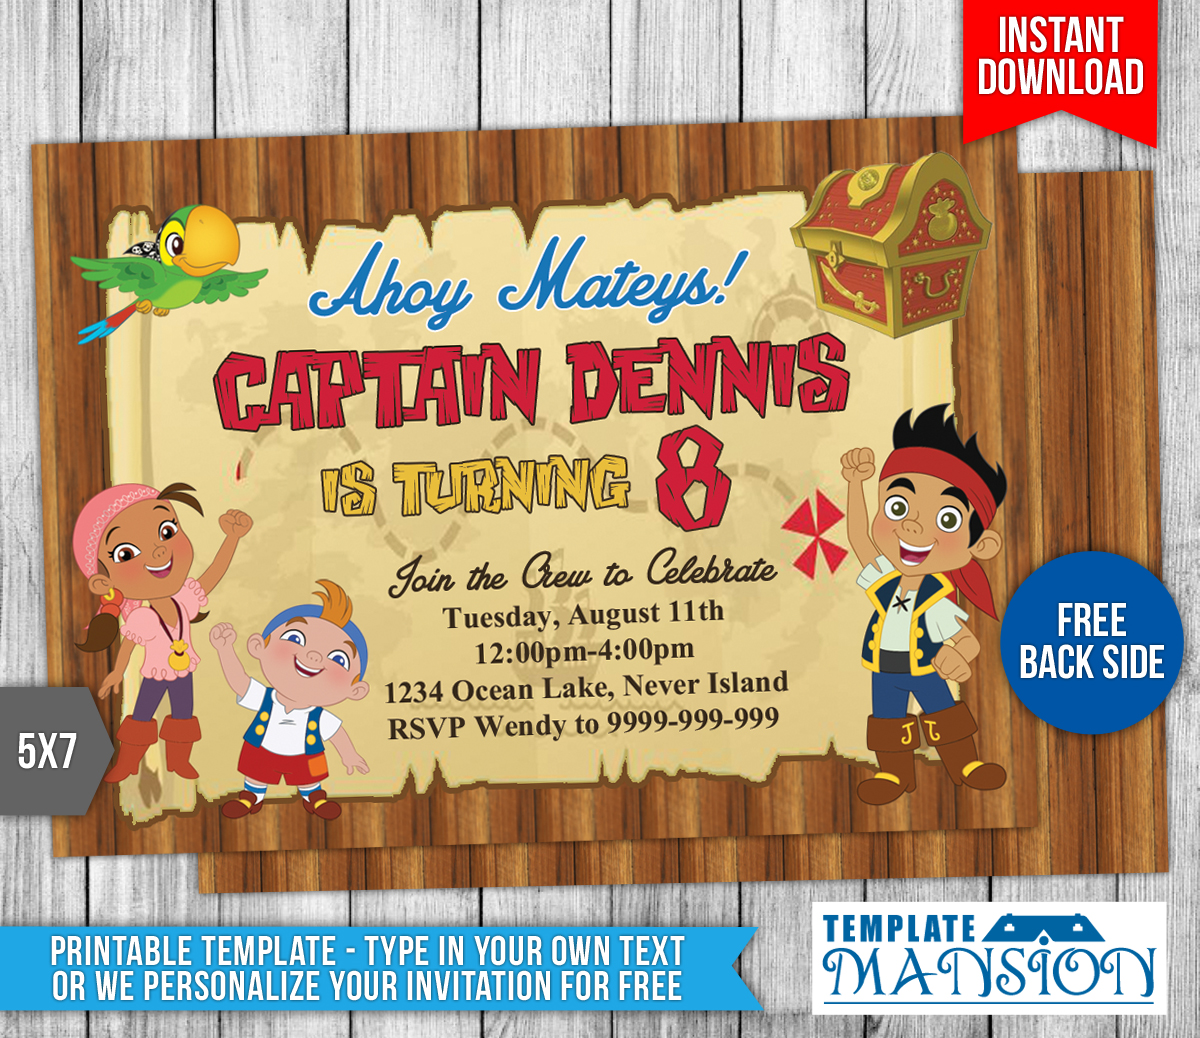 Jake and the NeverLand Pirates Invitation #2 by templatemansion